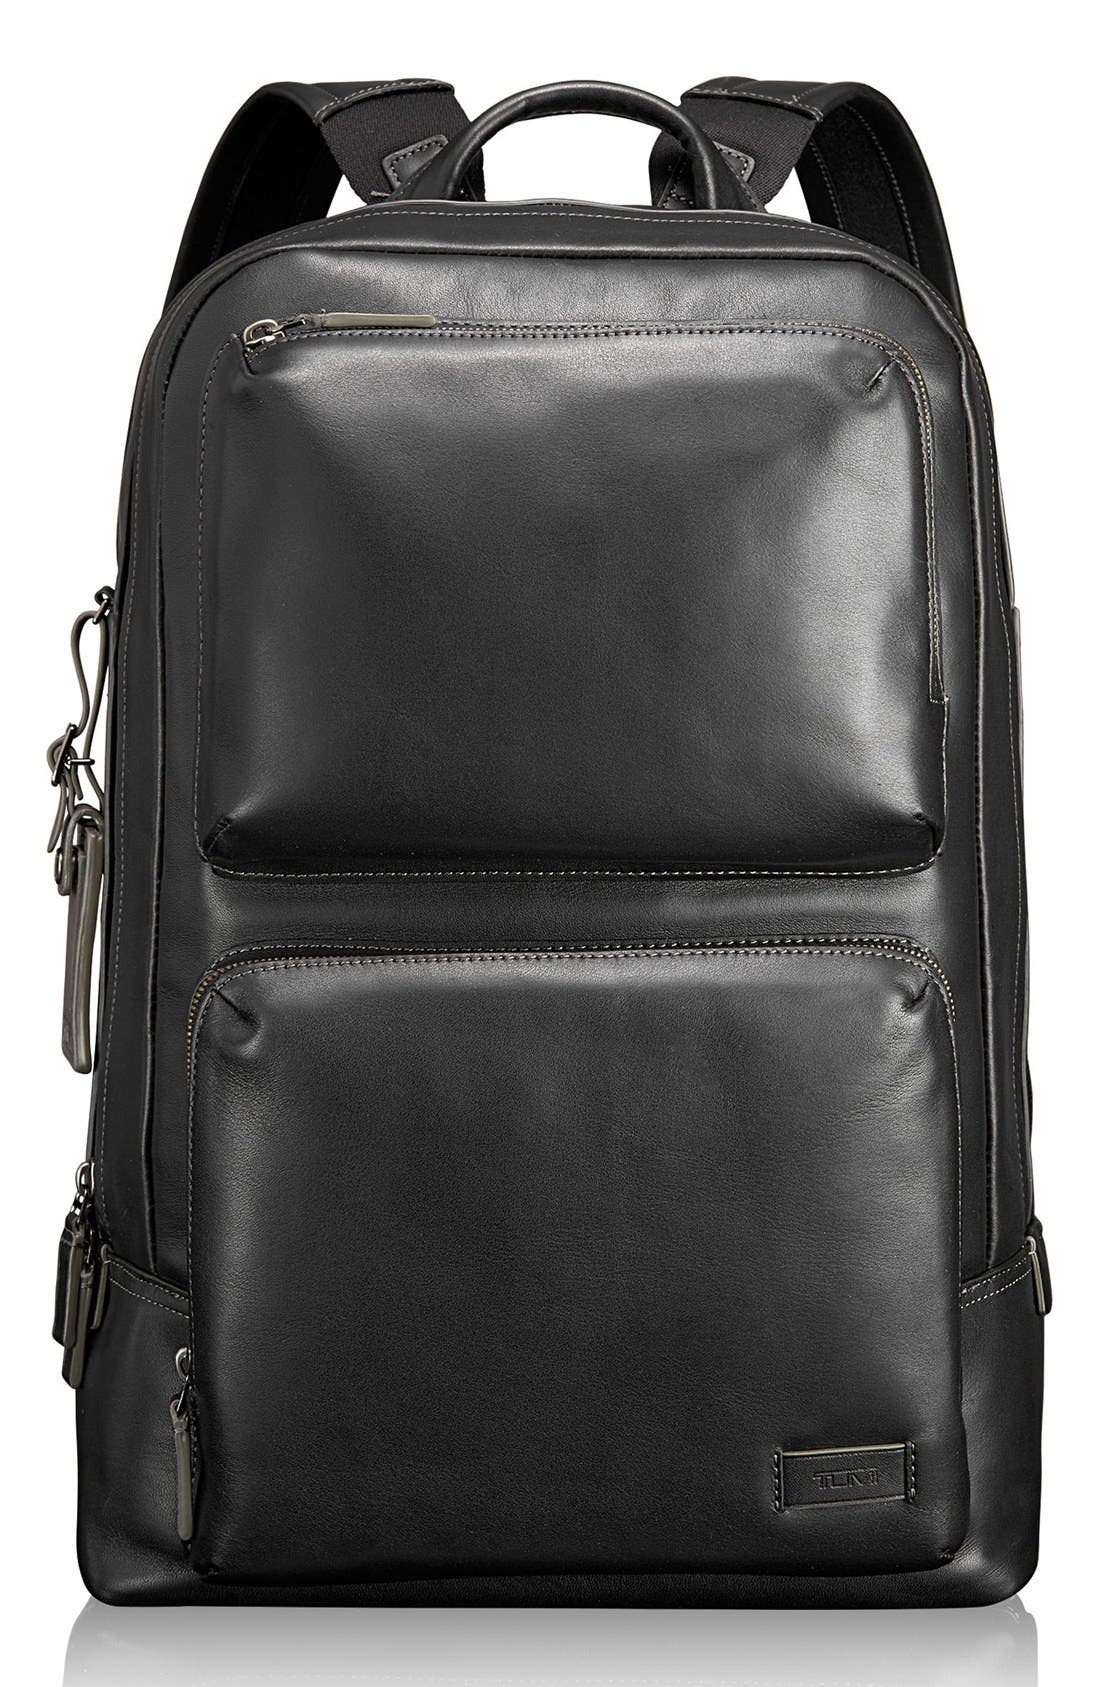 TUMI 'Harrison - Bates' Leather Backpack